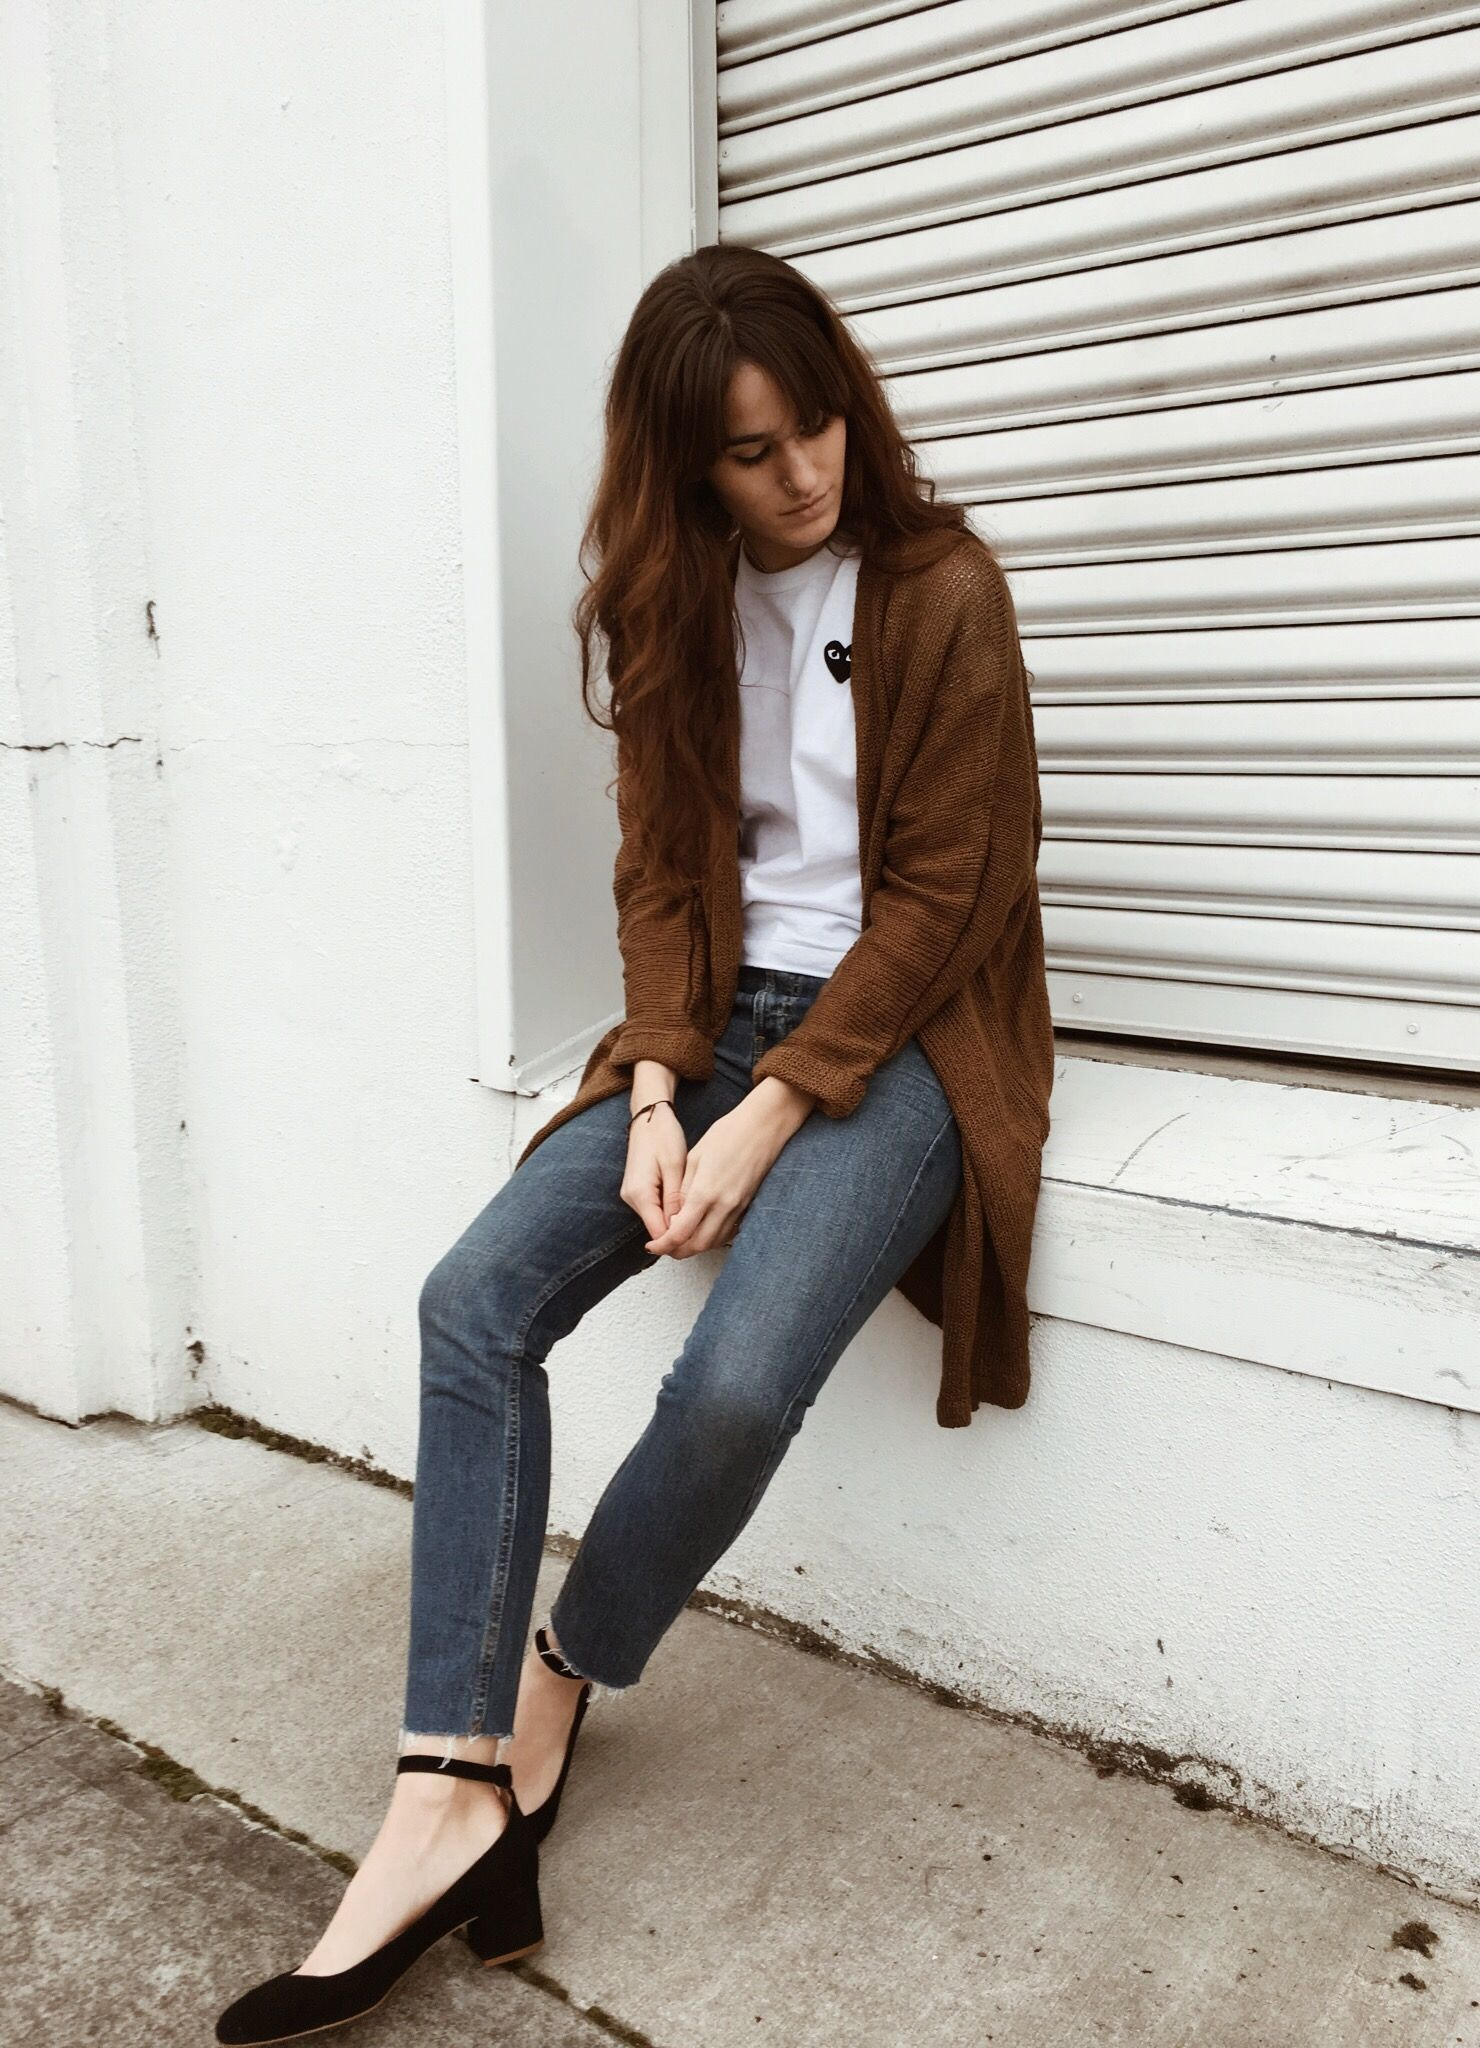 5bad8fa75 Black and brown outfit ideas for women